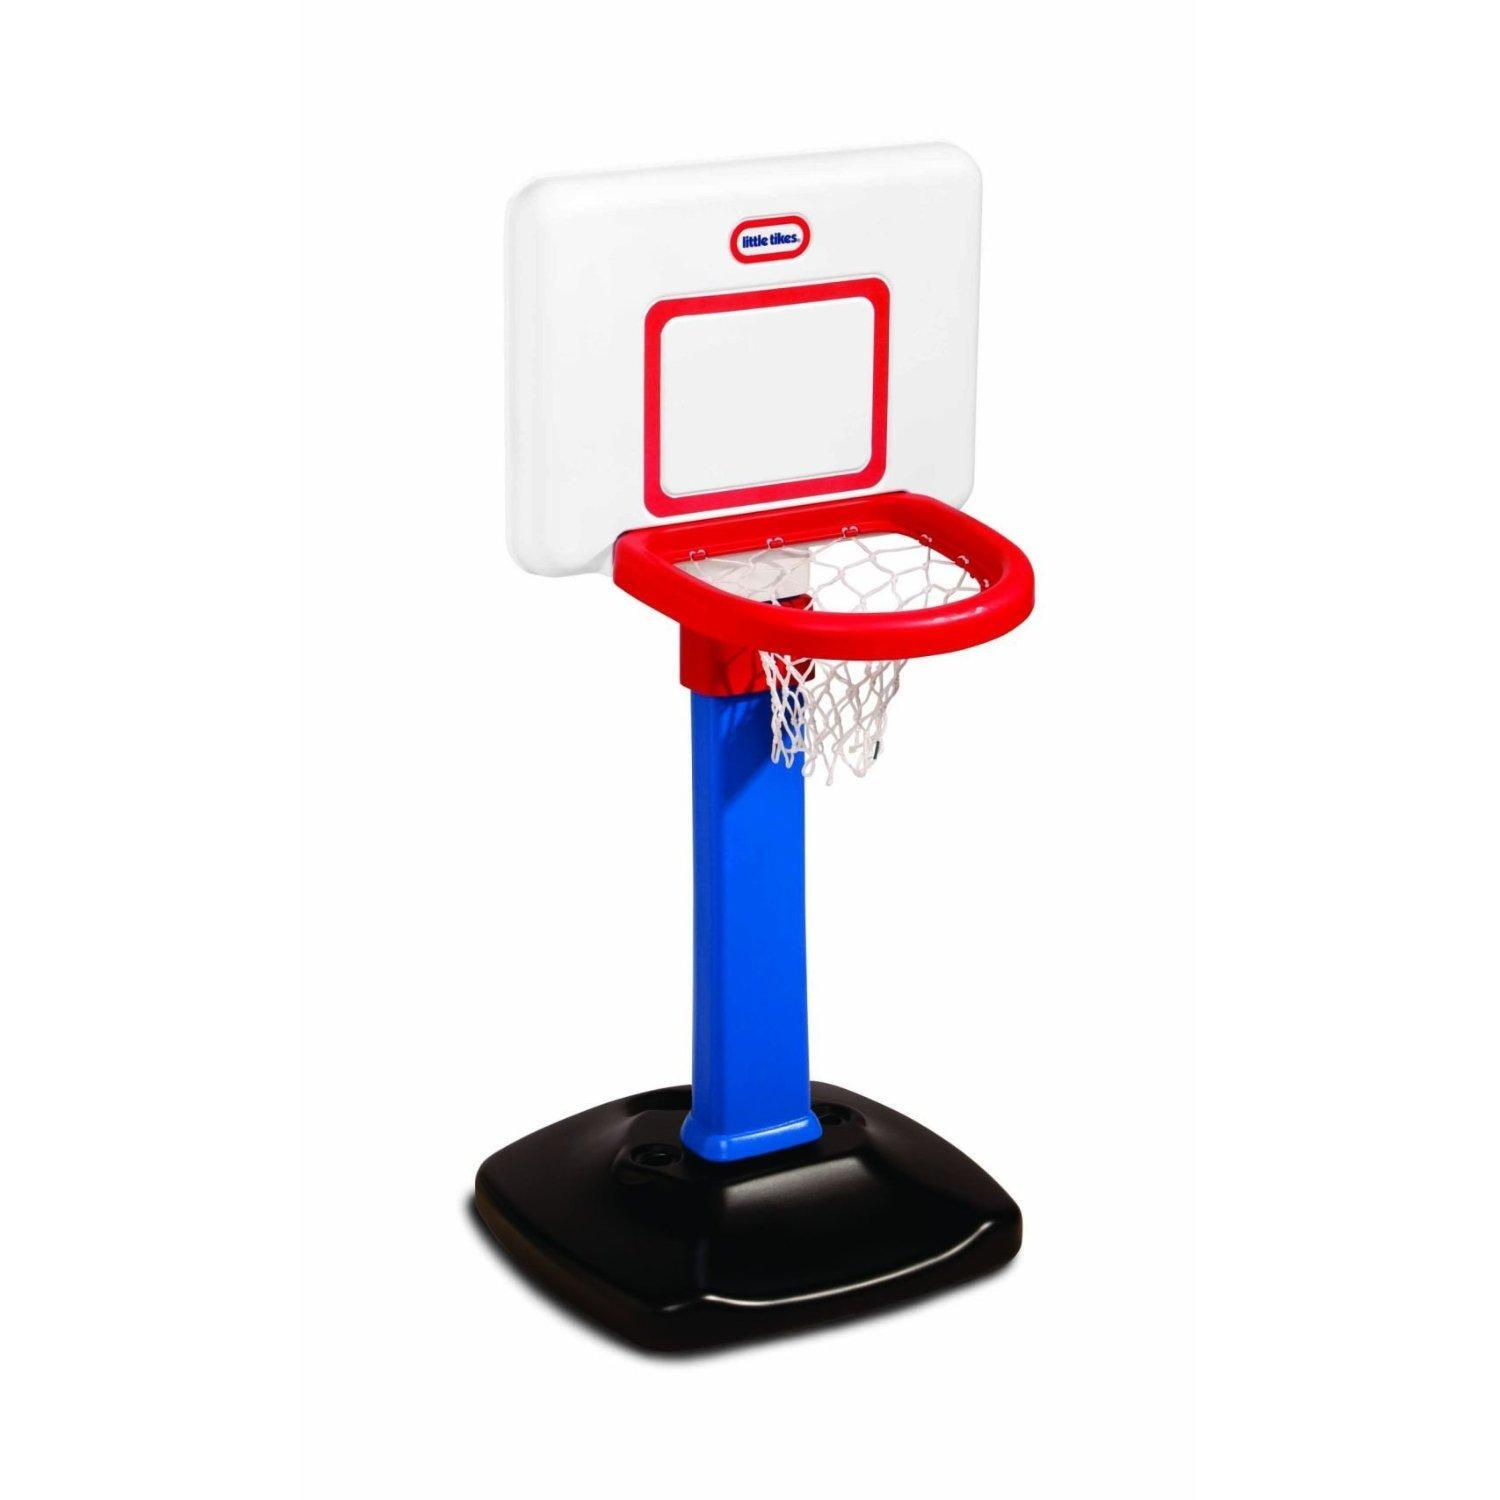 Little Tikes Totsports Basketball Set Square Backboard